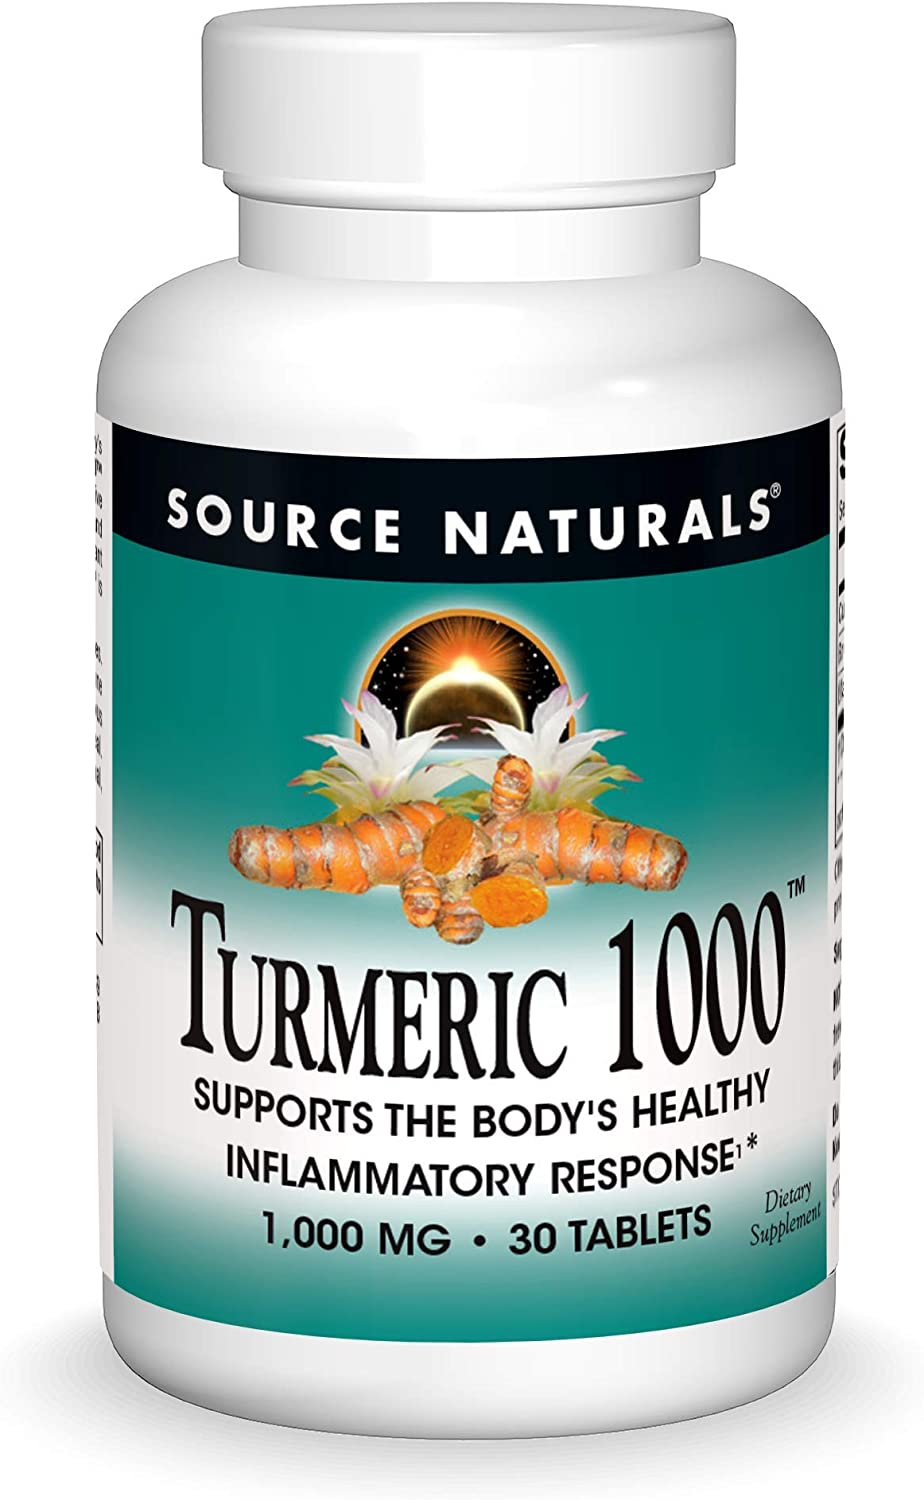 Source Naturals Washington Mall low-pricing Turmeric 1000 Supports Healthy Body's Infla The